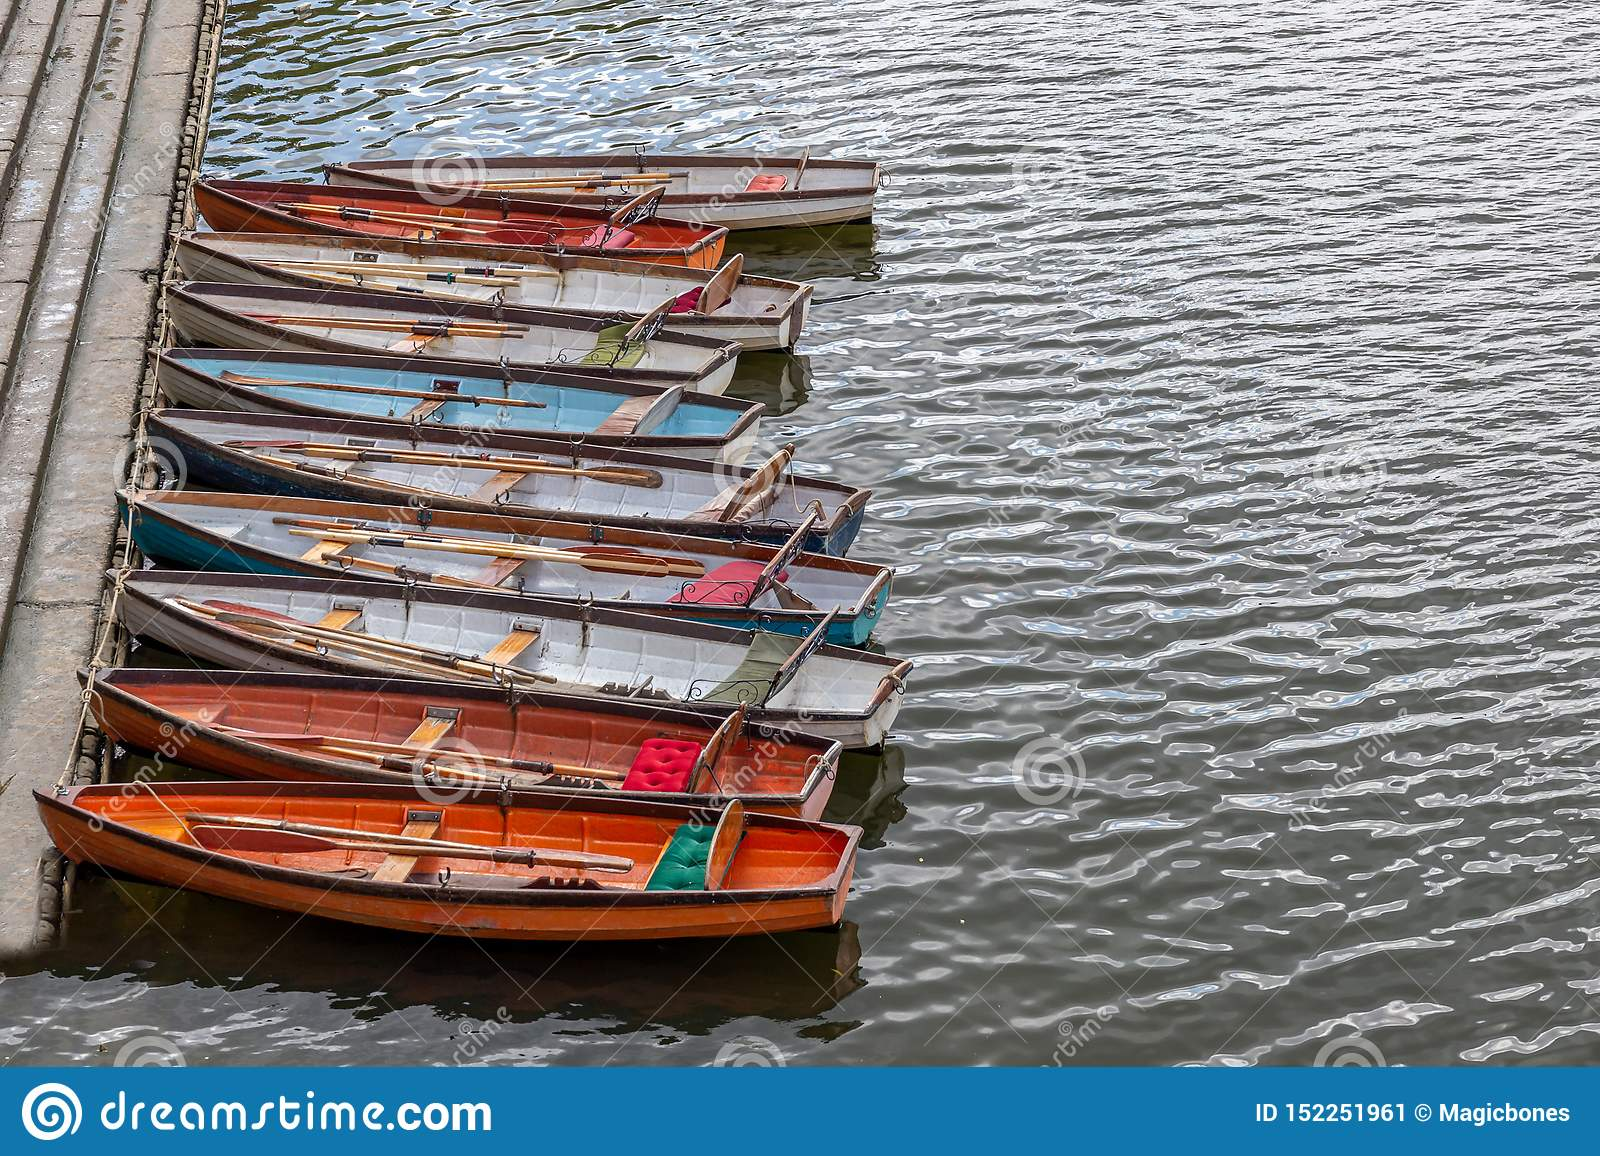 Wooden boats for hire moored on the River Thames